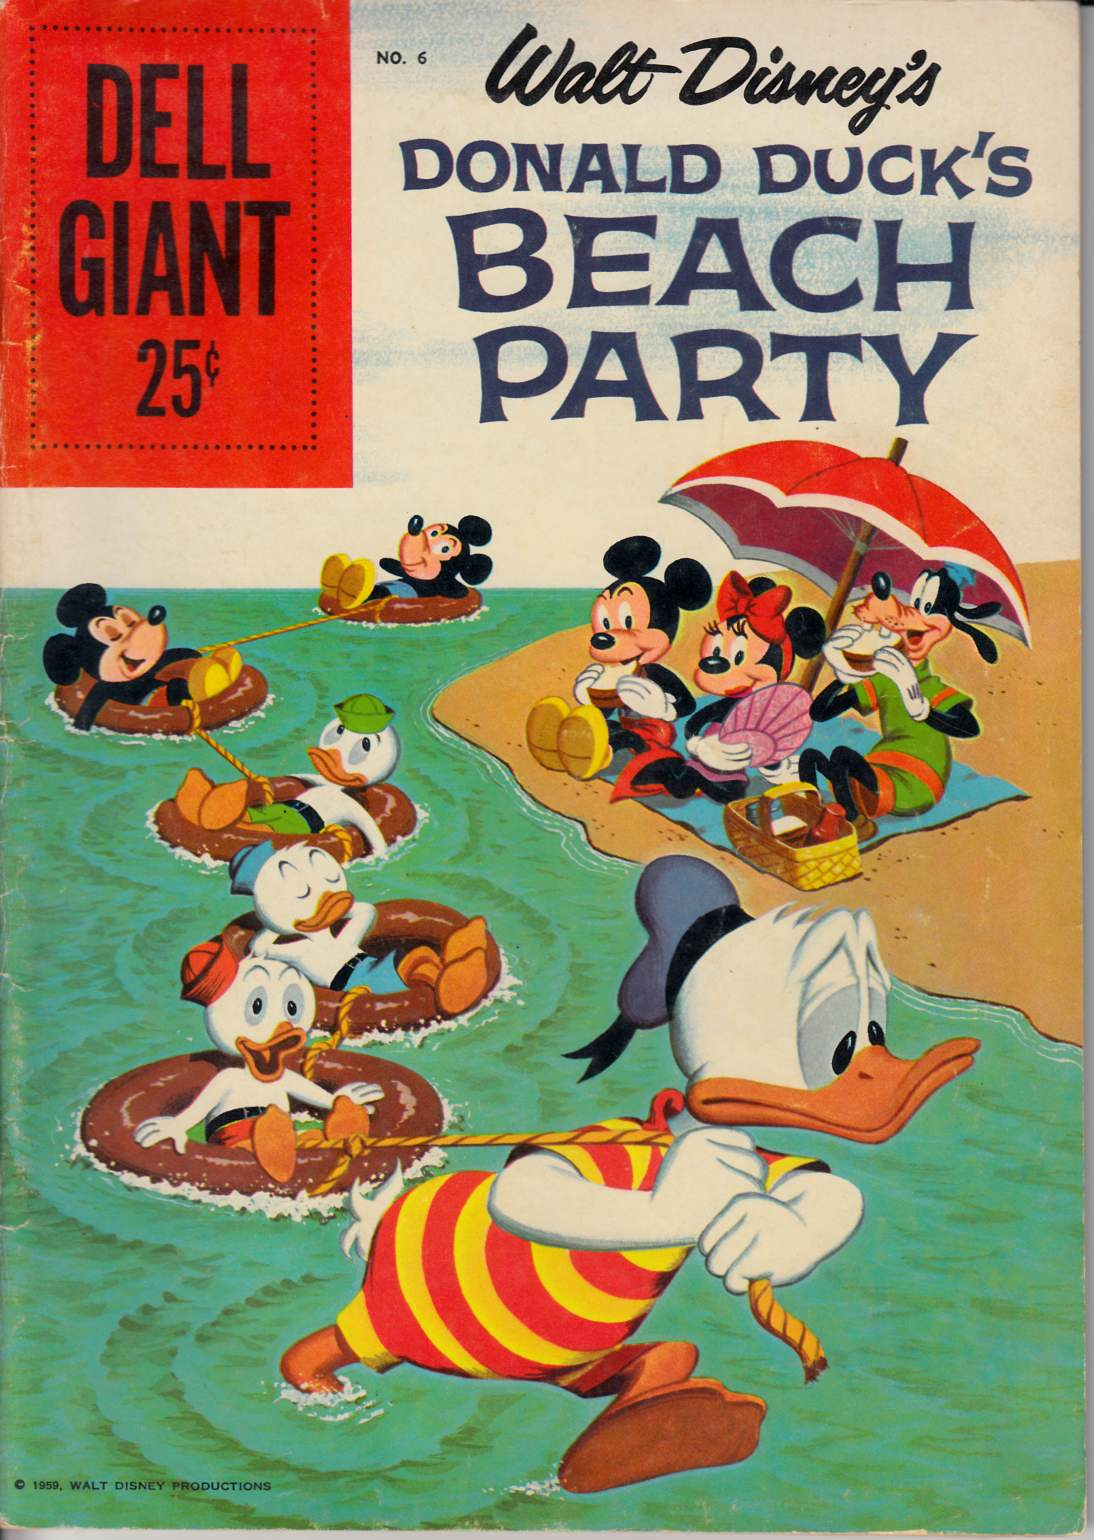 Dell Giant Donald Duck Beach Party #6 Good (2.0) [Dell Comic] LARGE